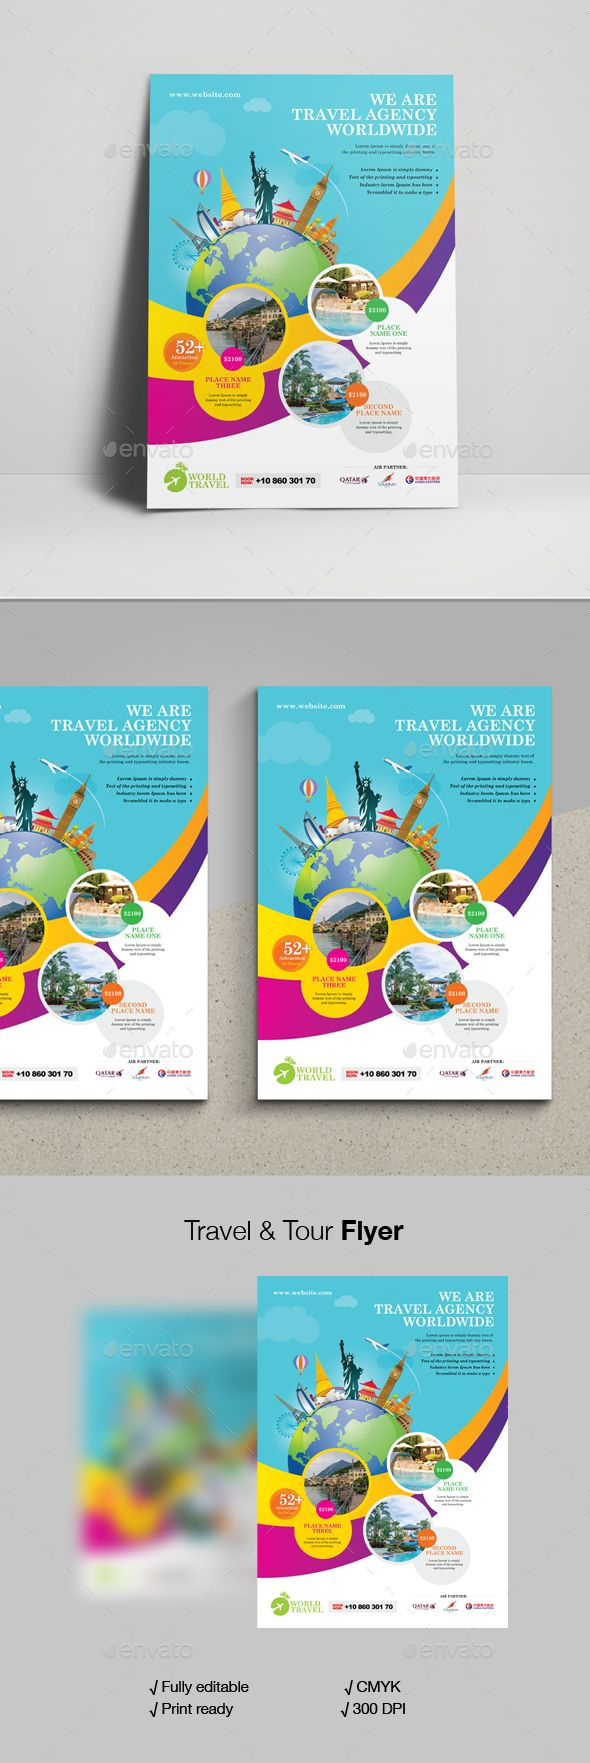 Travel Tour Flyer Template Vector Eps Flyer Templates Flyer